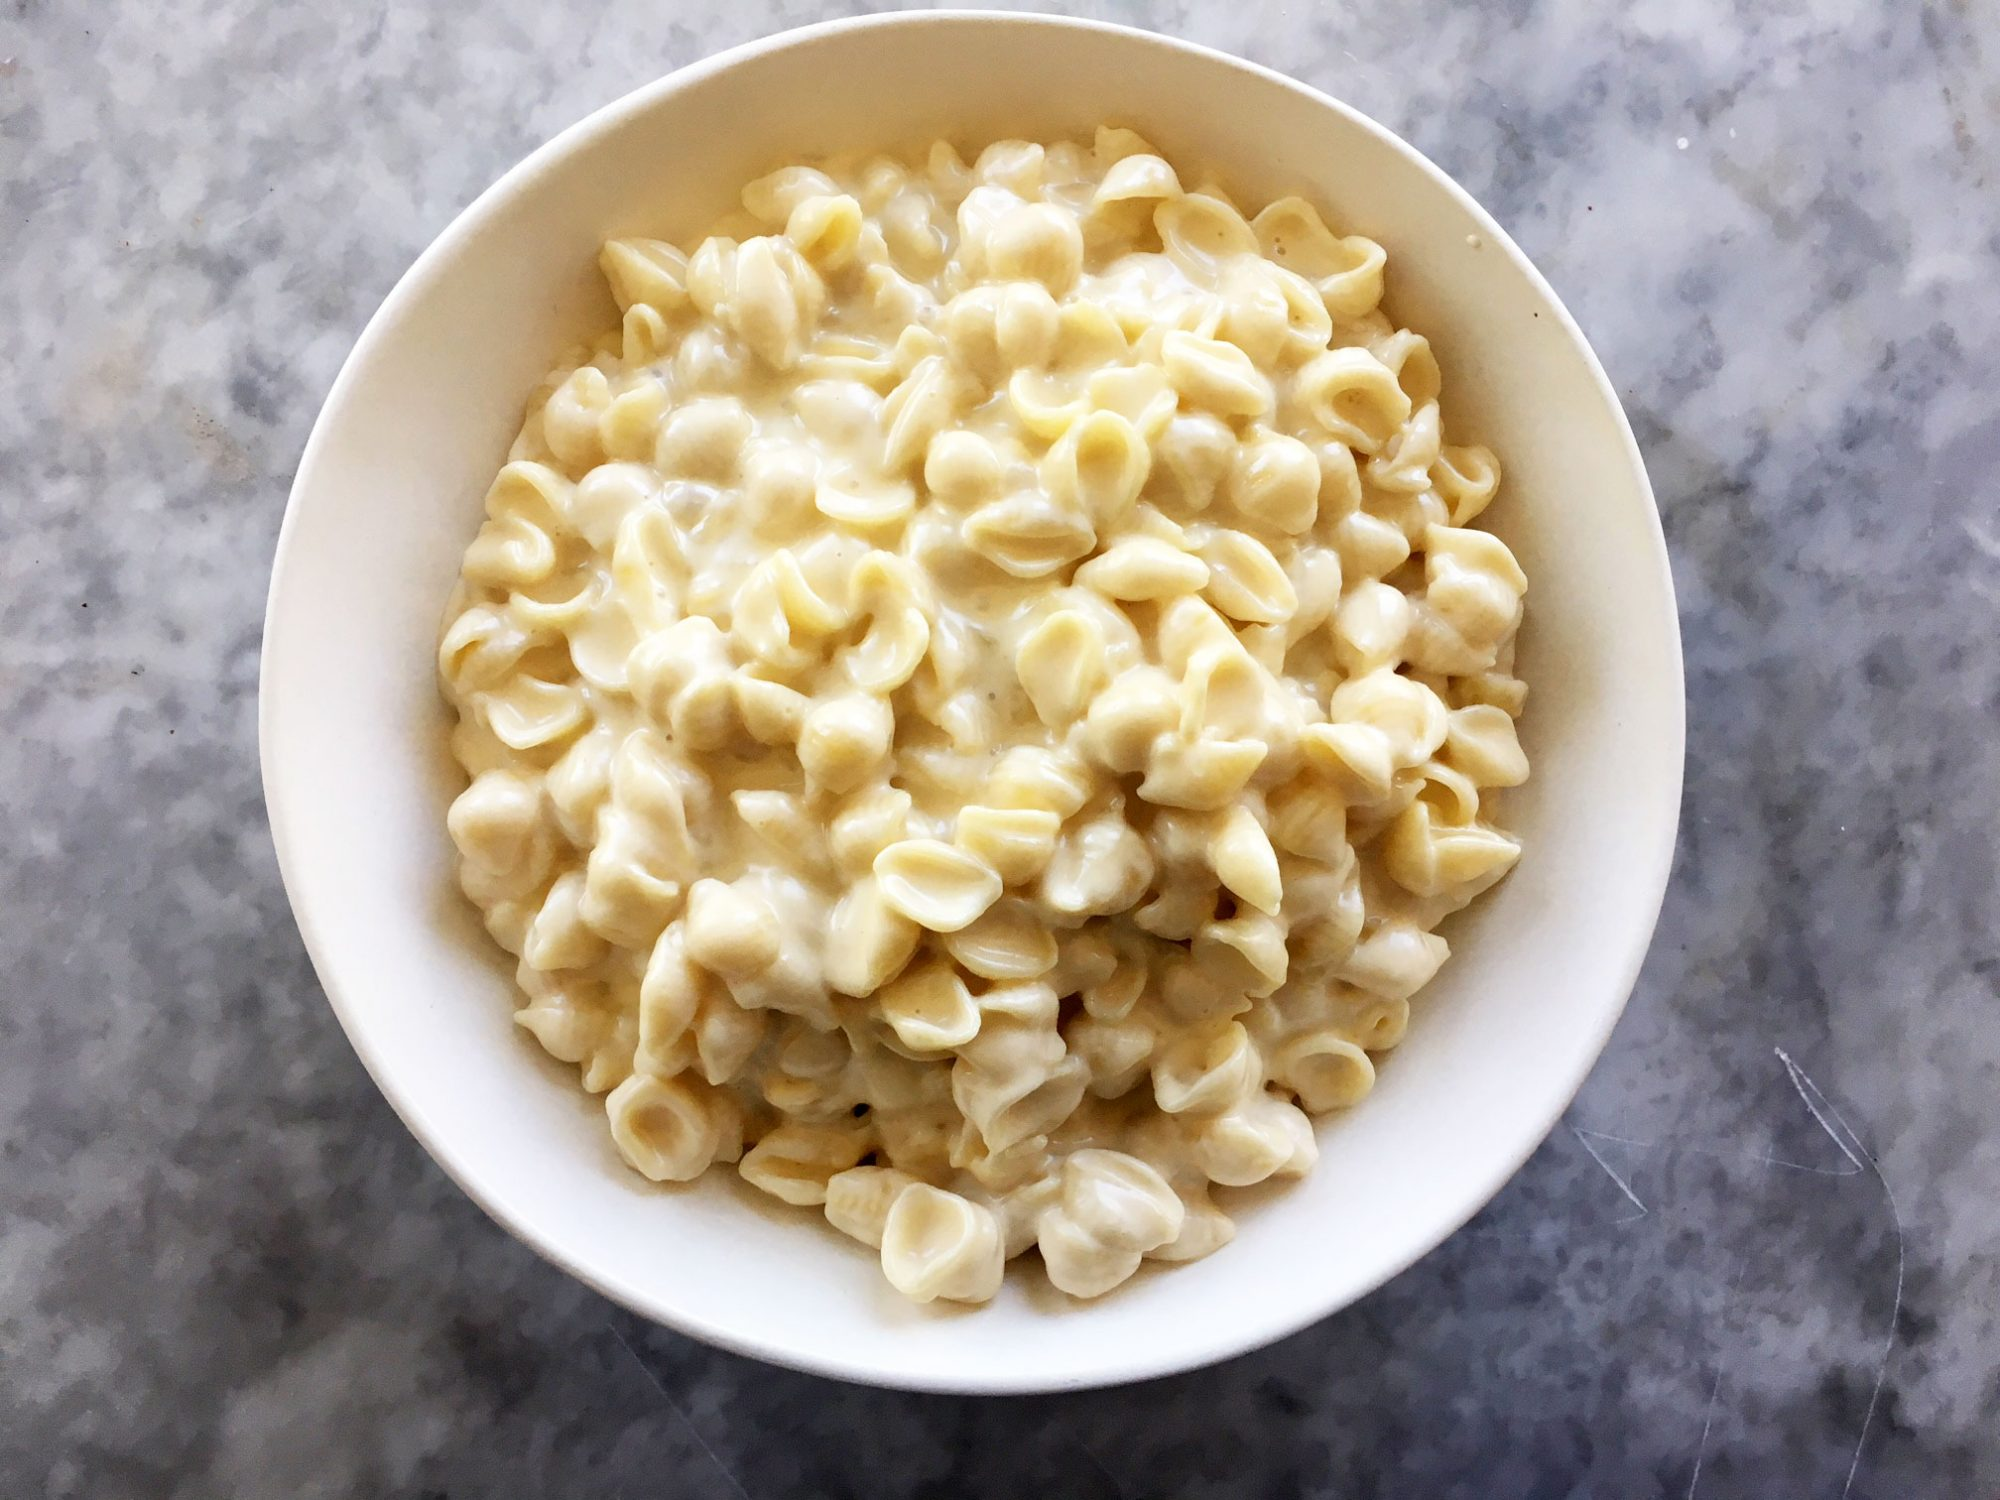 Copycat Panera Bread Mac and Cheese